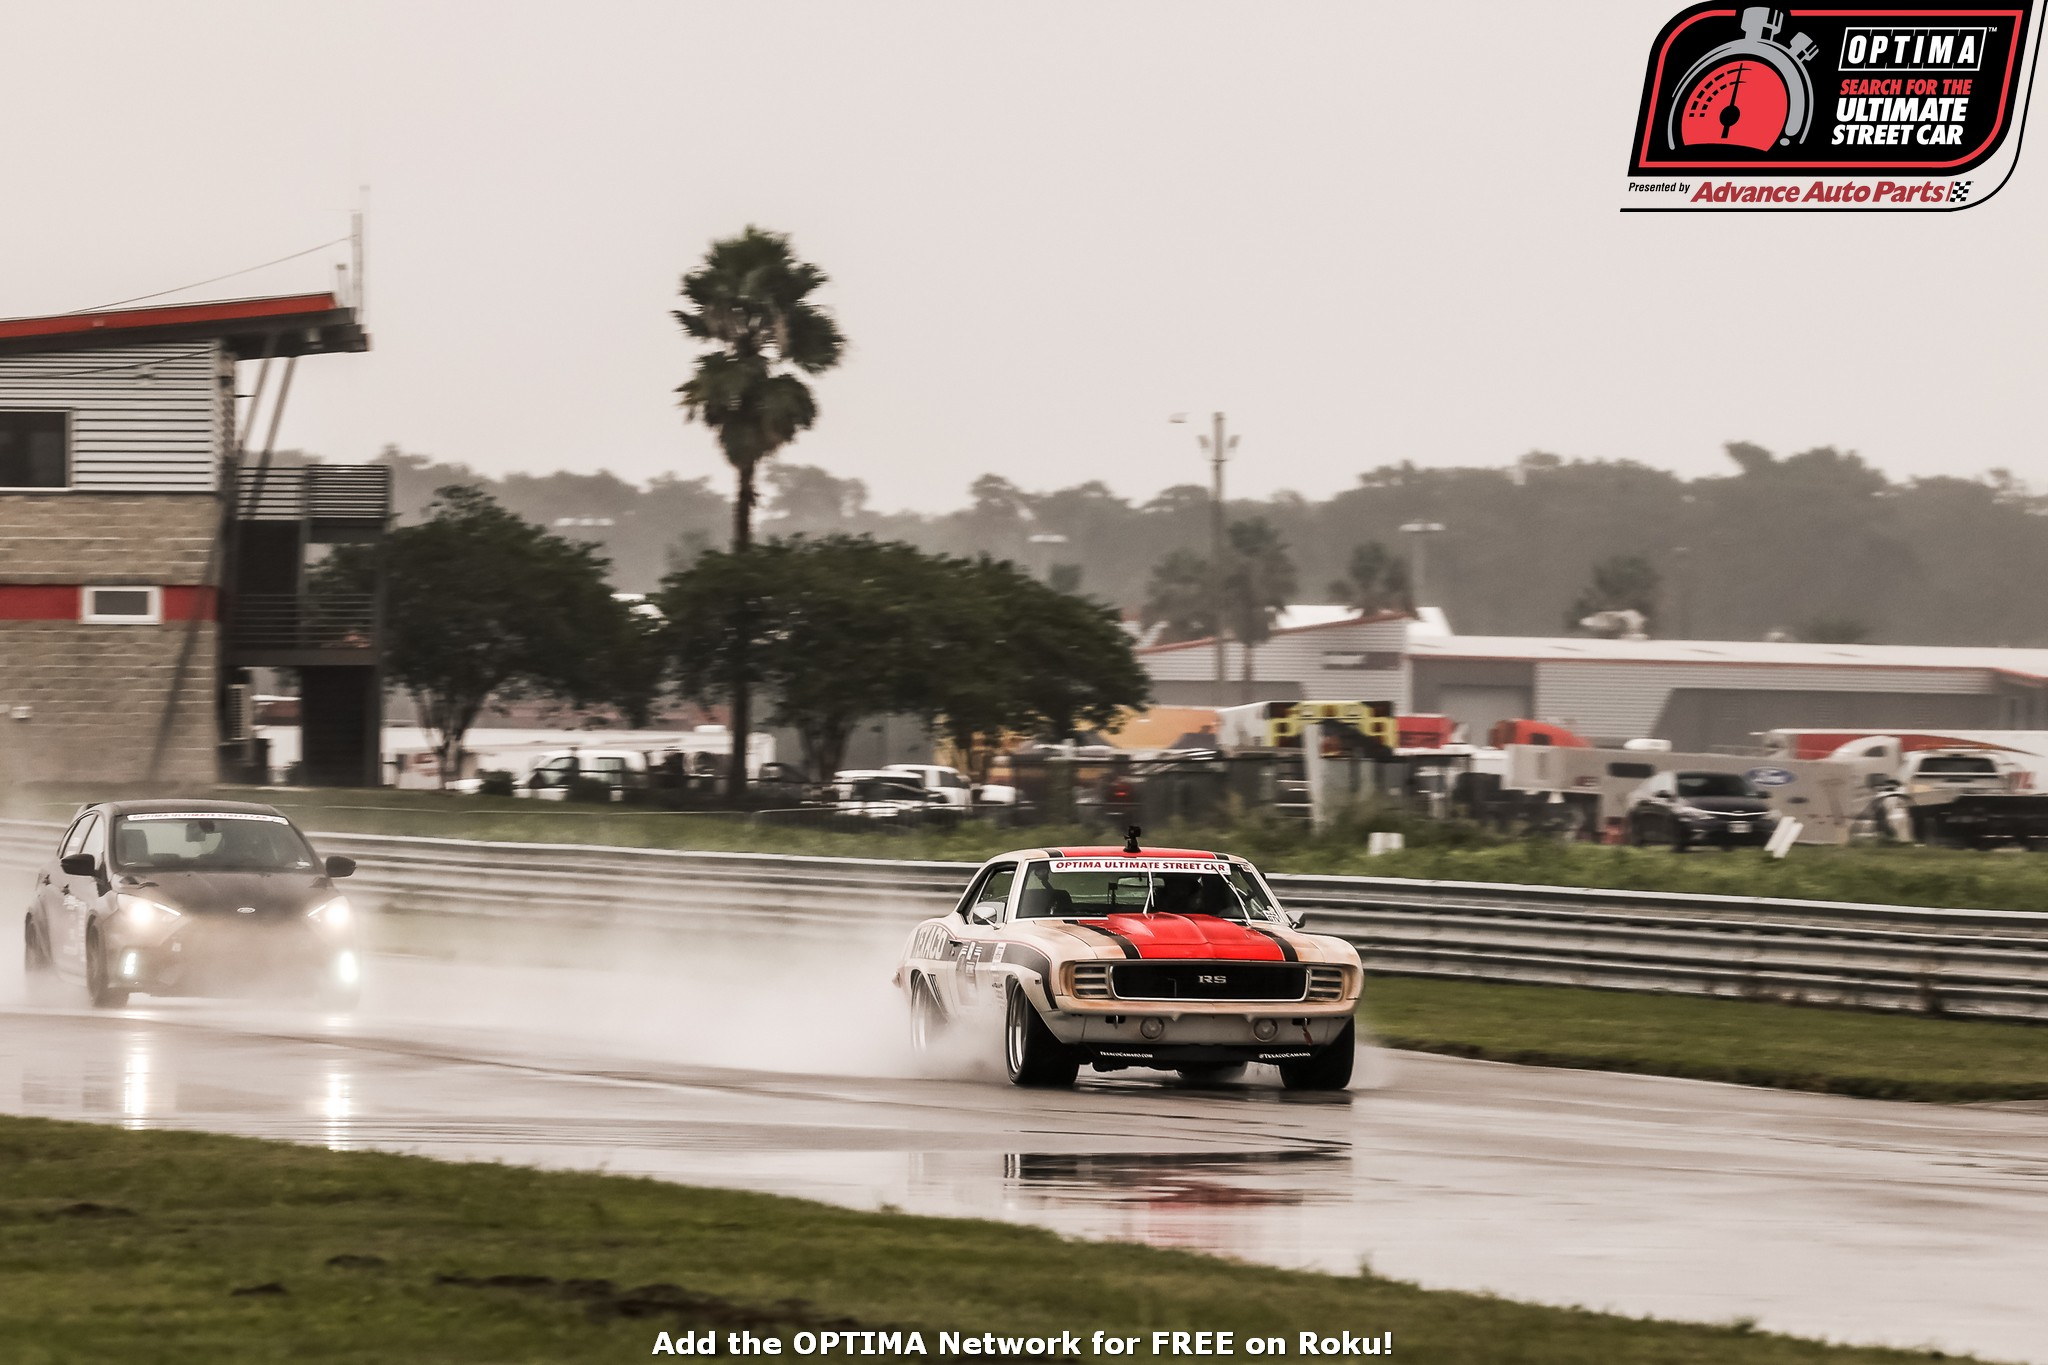 Rainmakers: New Orleans Offers A Wet And Wild Street Car Experience For Optima Search For The Ultimate Street Car Racers